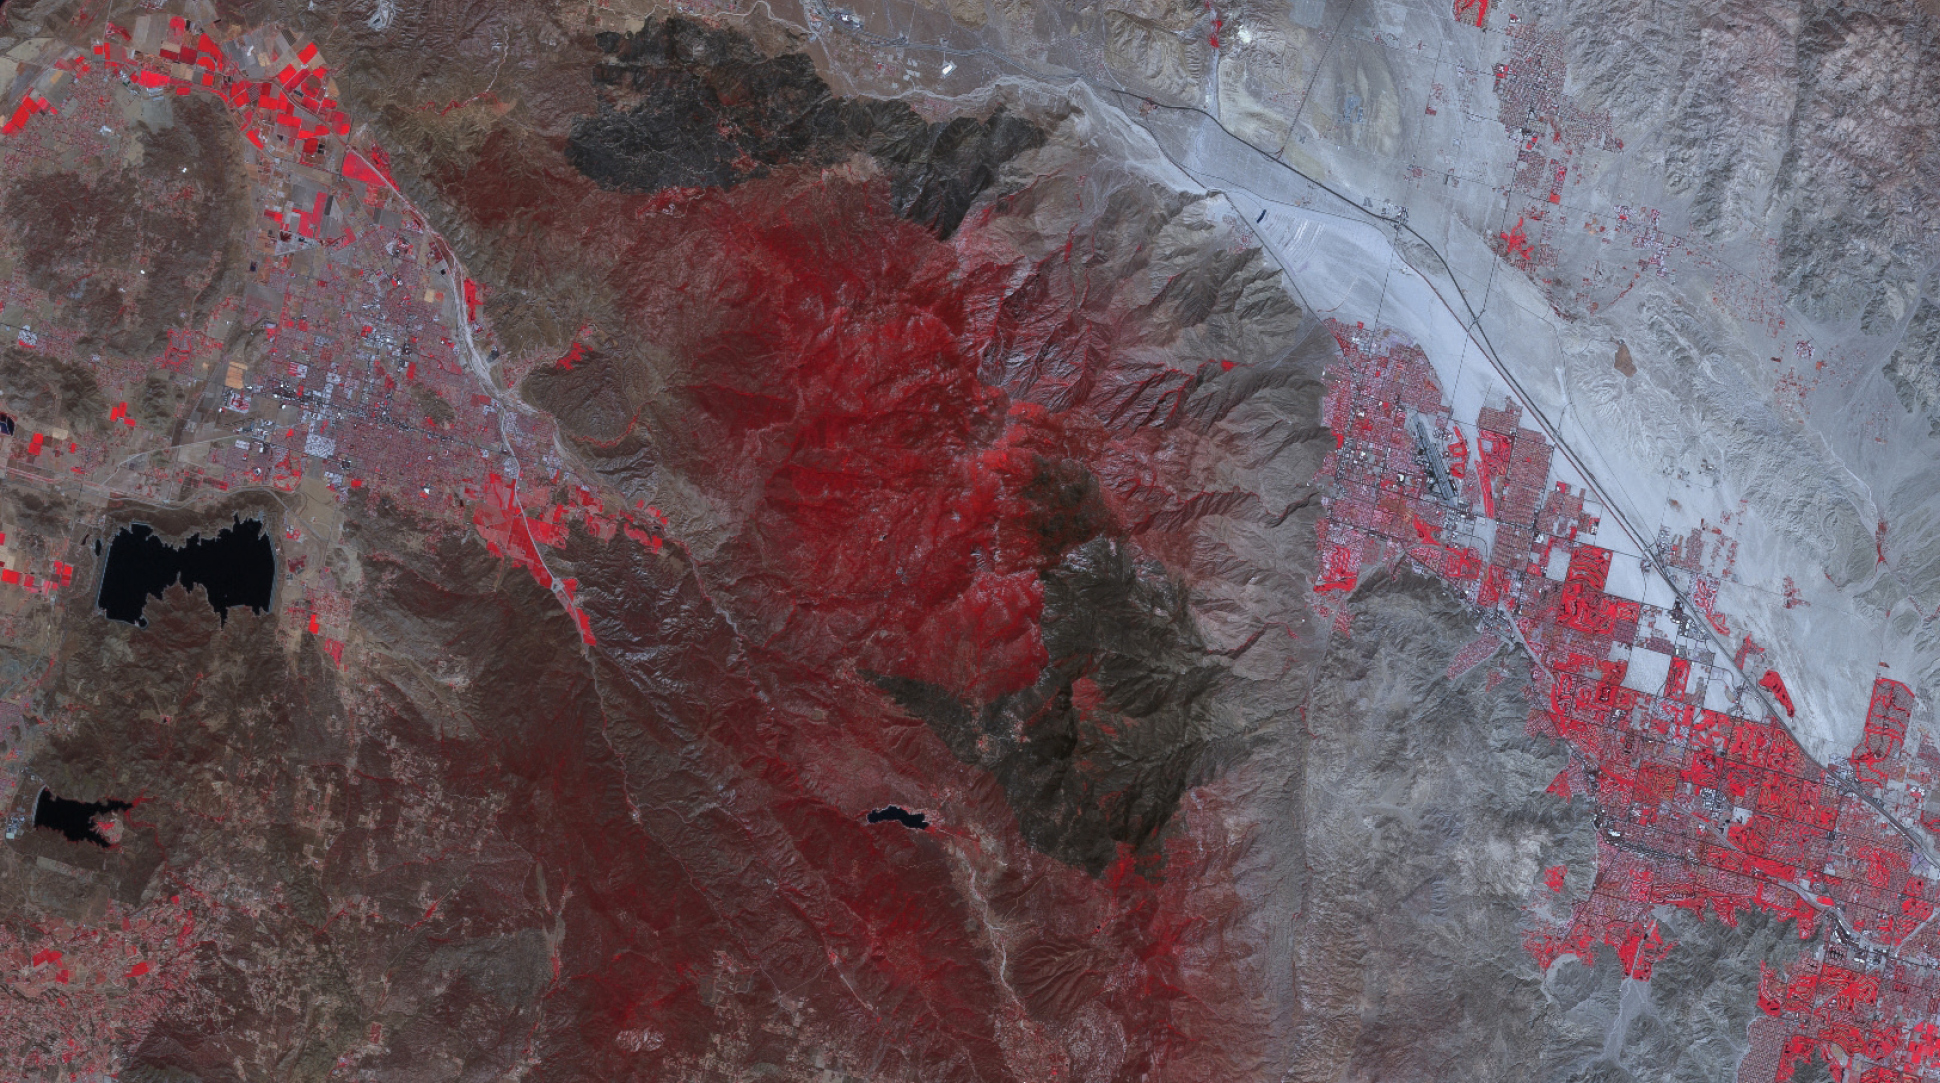 Figure 3. Colorado burnscar from wildfires, U.S. imaged May 22, 2013